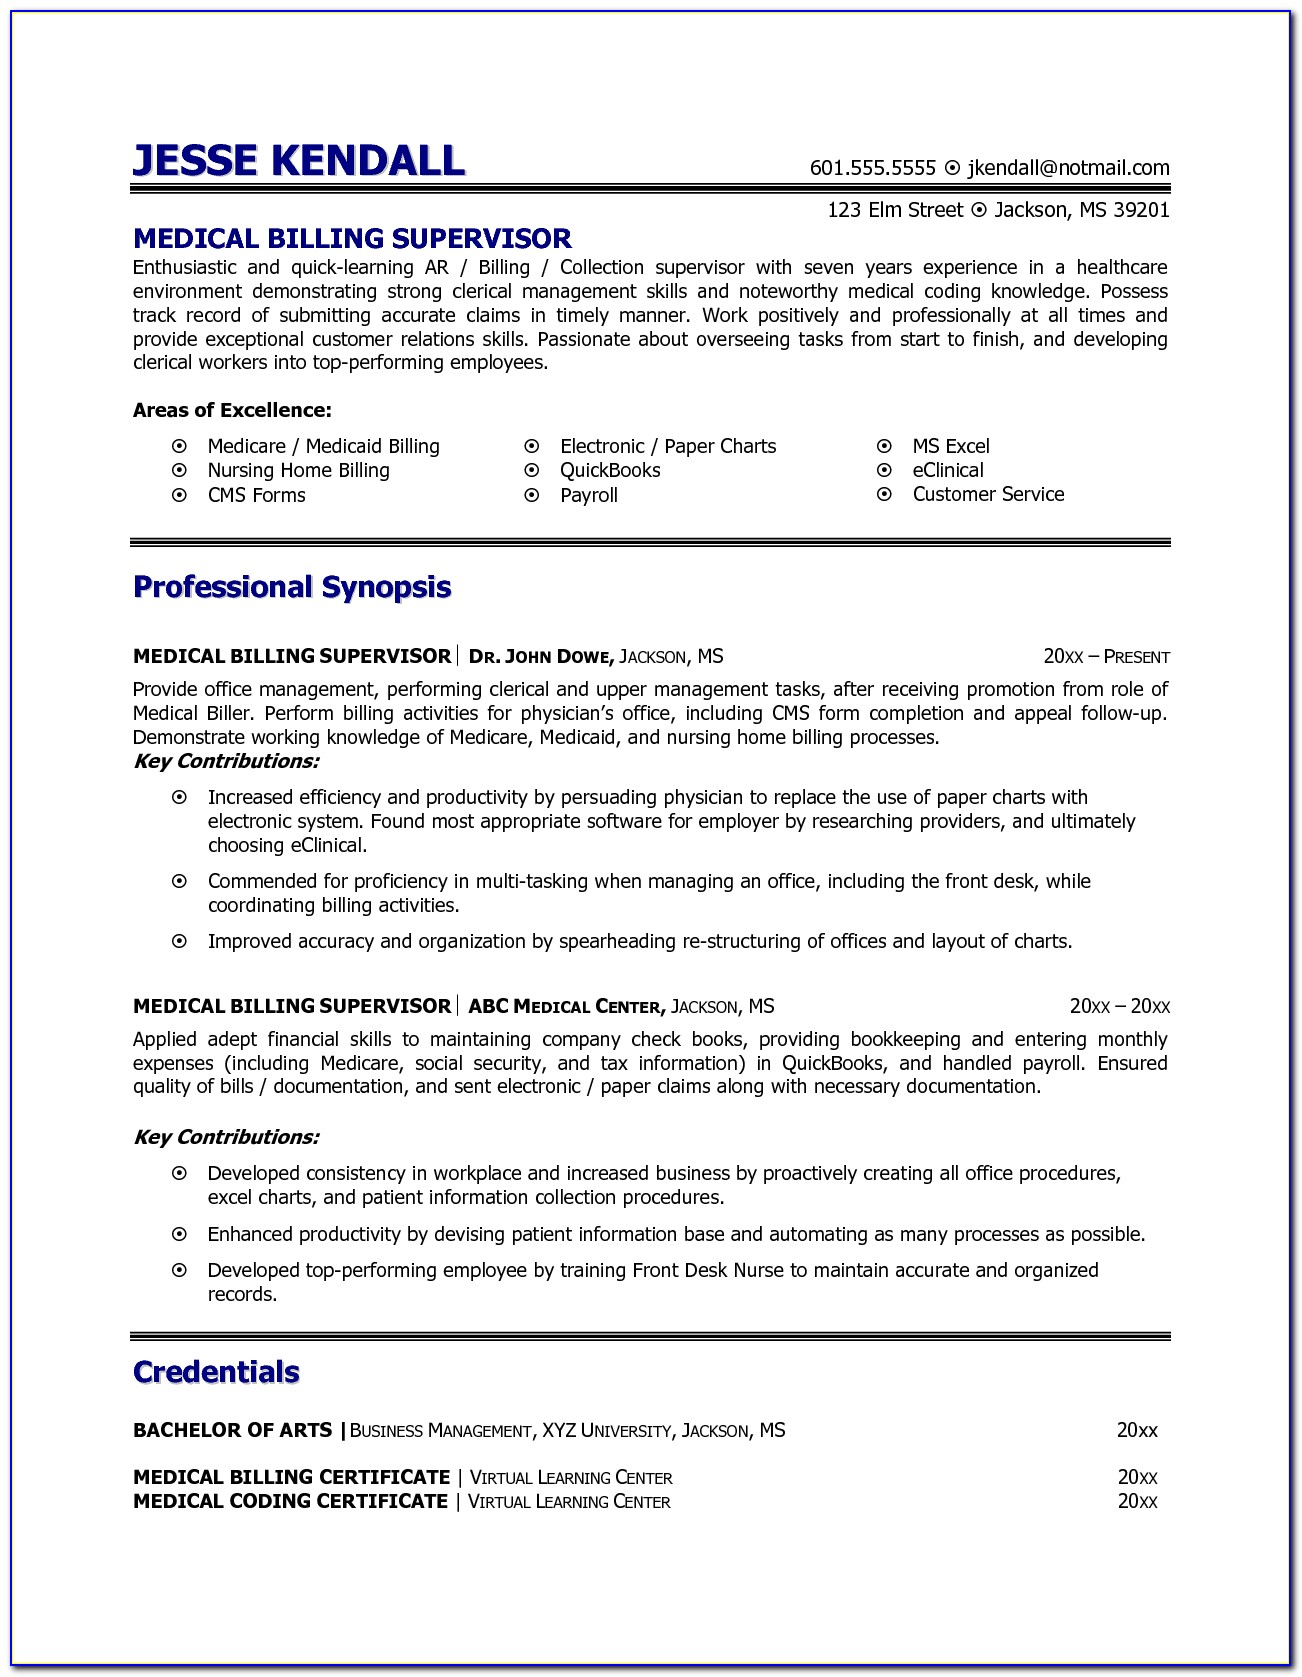 resume examples for medical billing and coding vincegray2014 simple easy collaborate Resume Medical Coding Resume Examples